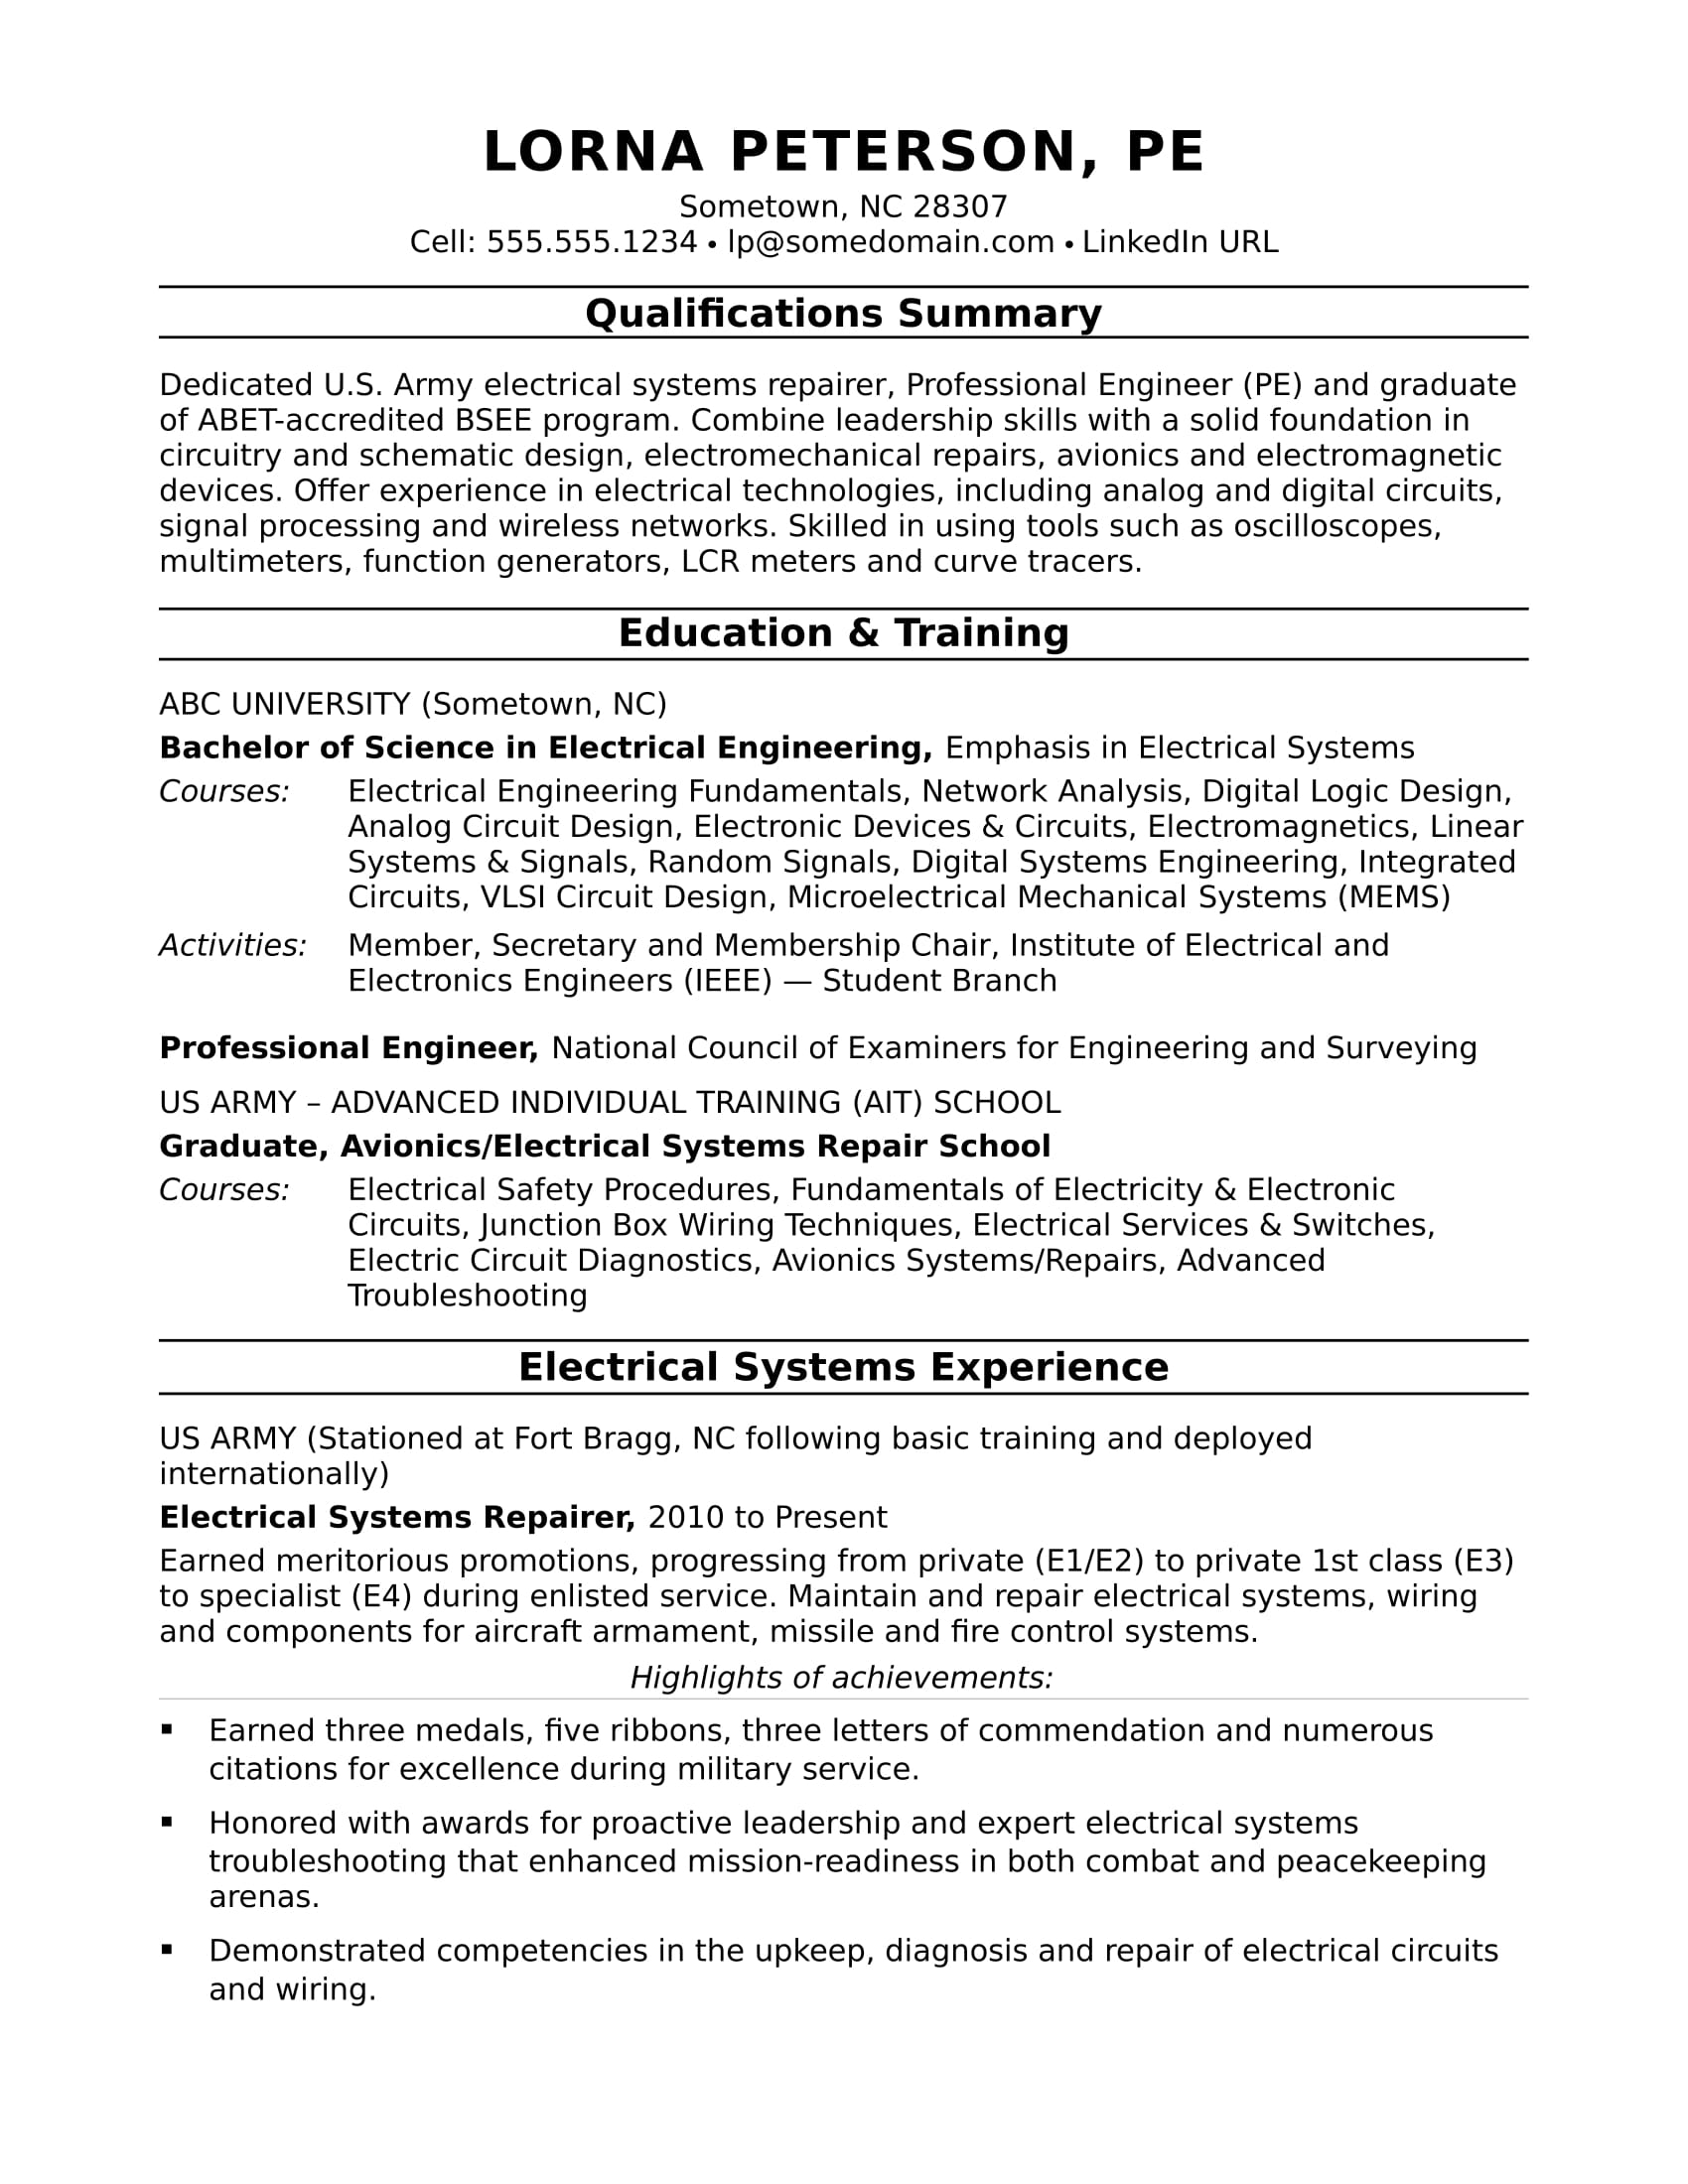 Charming Sample Resume For A Midlevel Electrical Engineer  Systems Engineer Resume